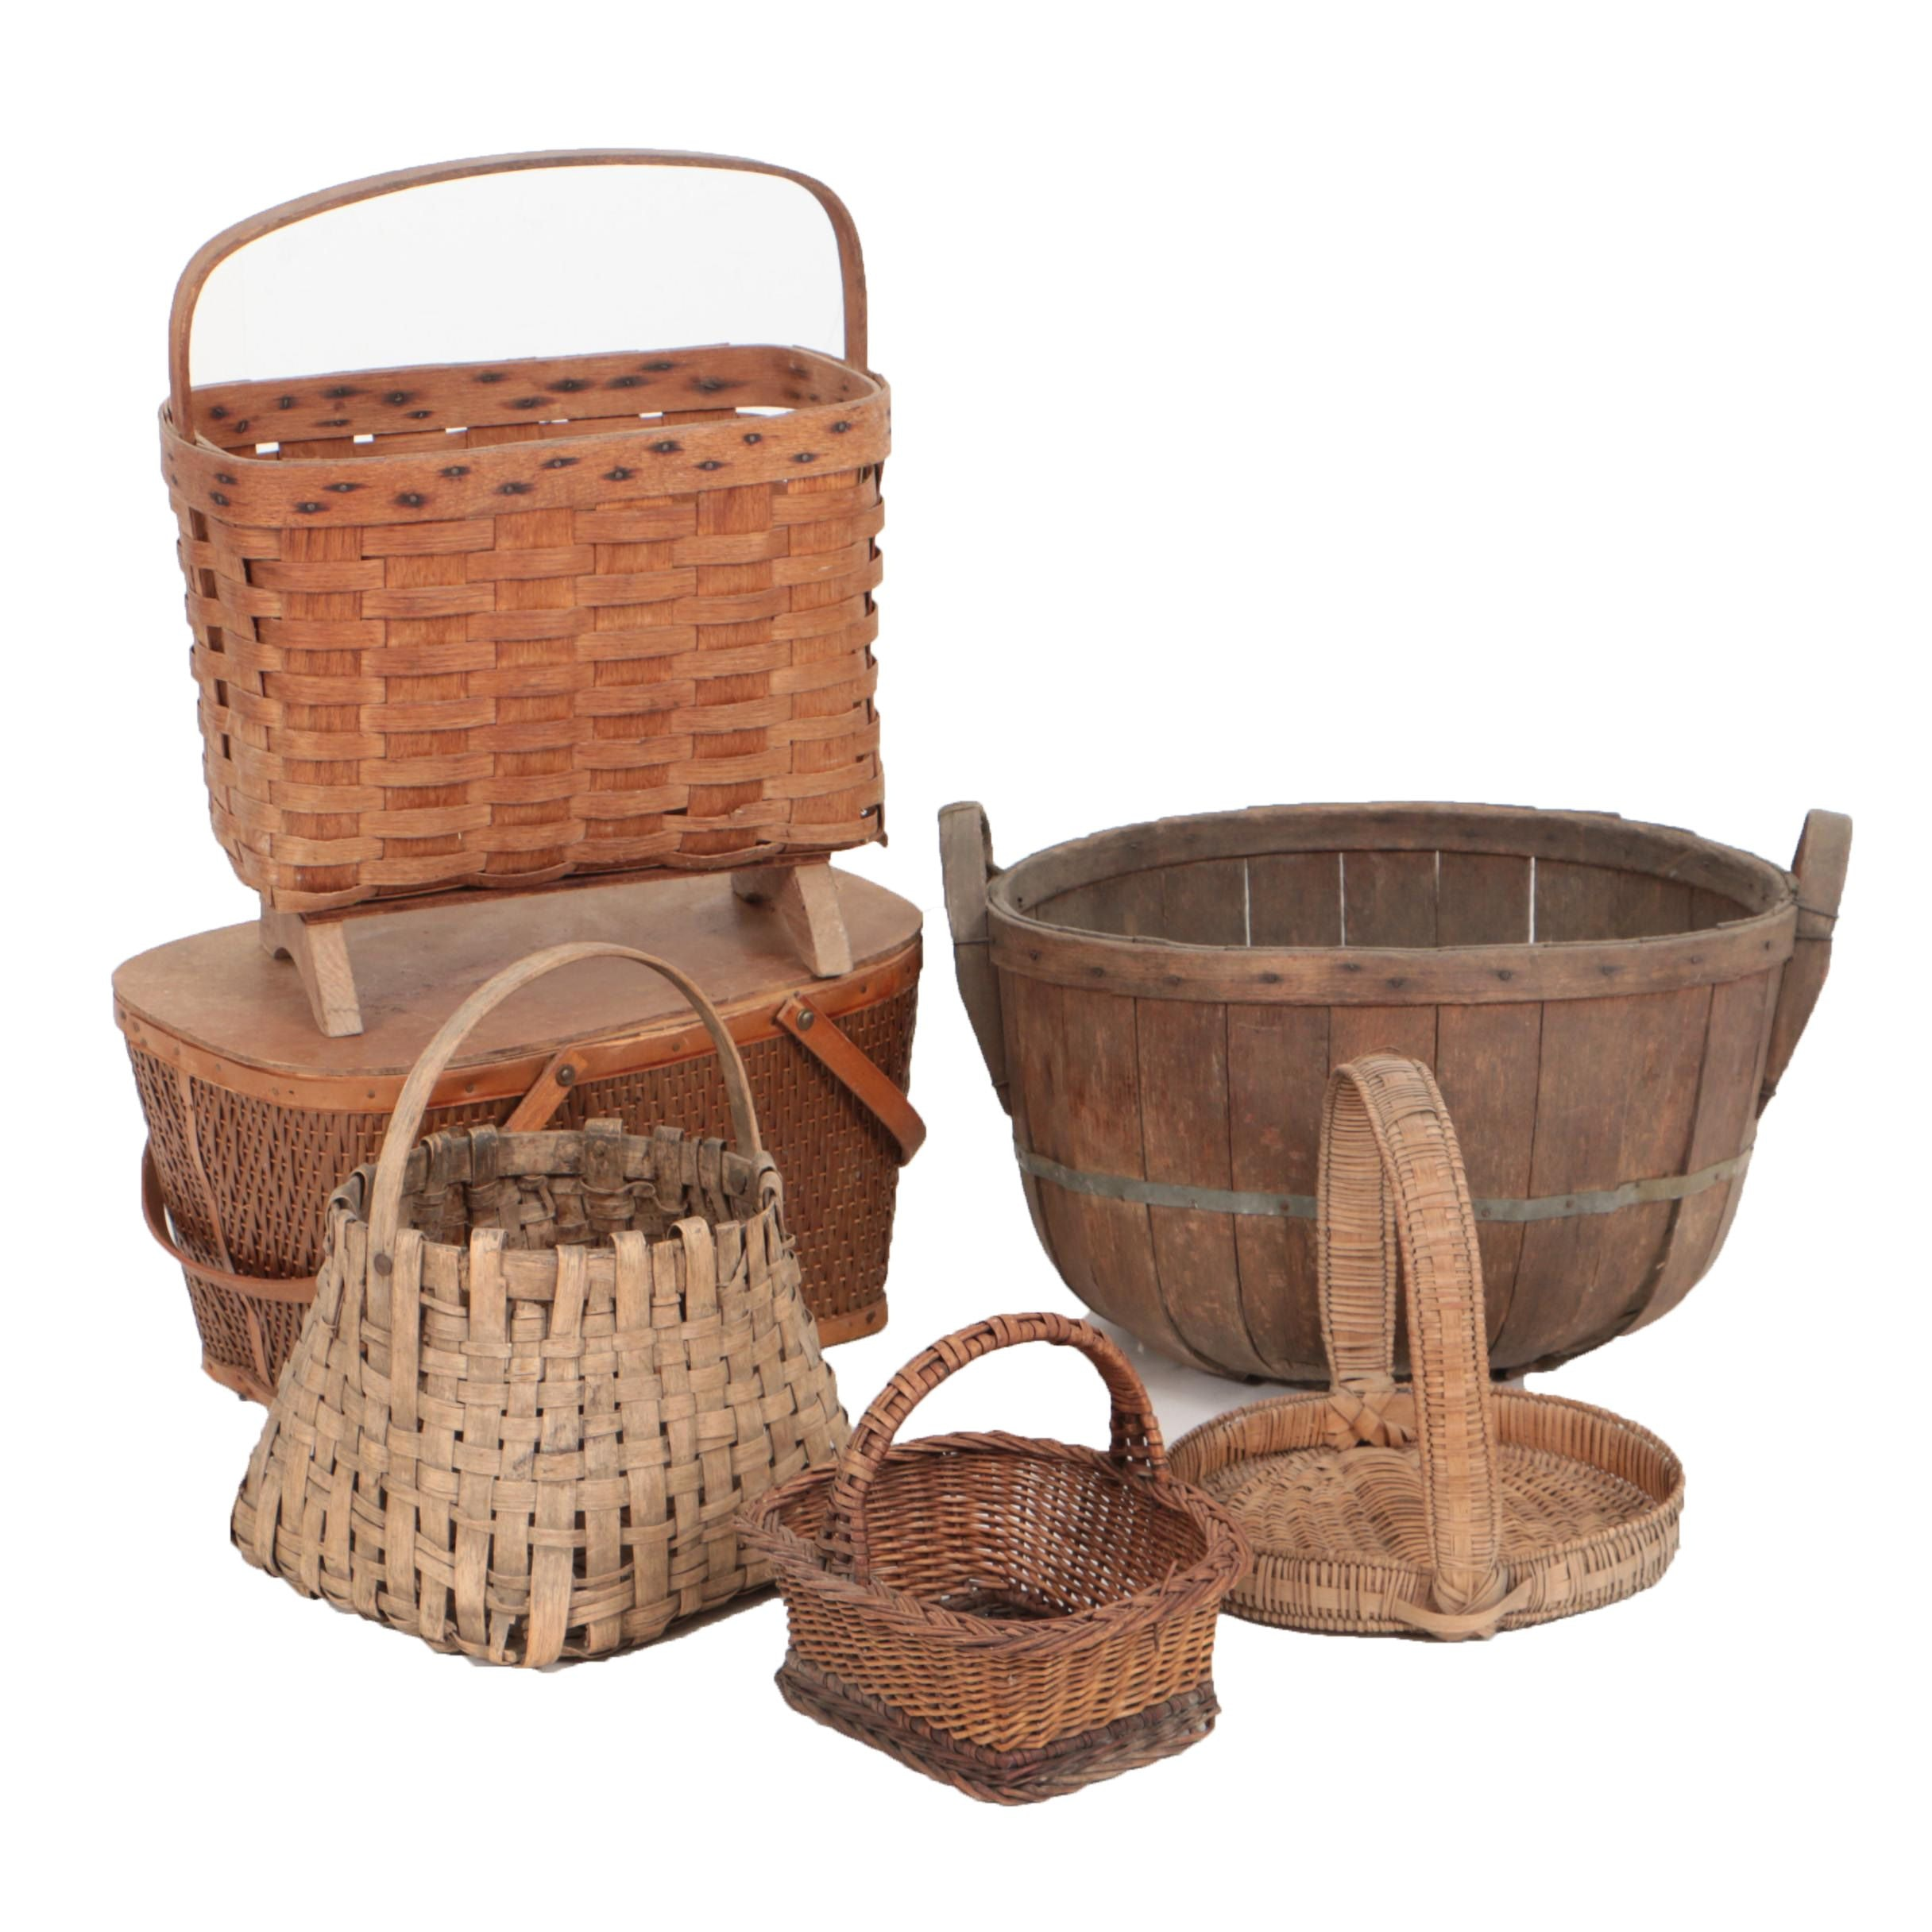 Circa 1950s Red-Man Picnic Basket with Decorative Handled Baskets